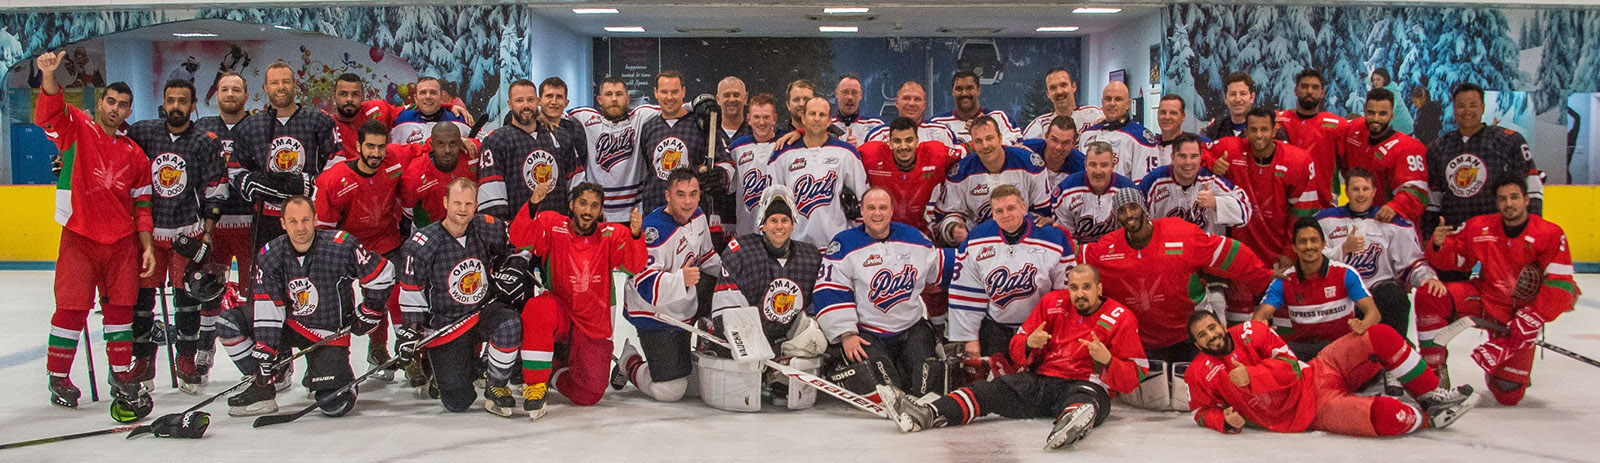 HMCS Regina's hockey team played against an expat team called the Wadi Dogs and the Oman national ice hockey team, the Khanjars.